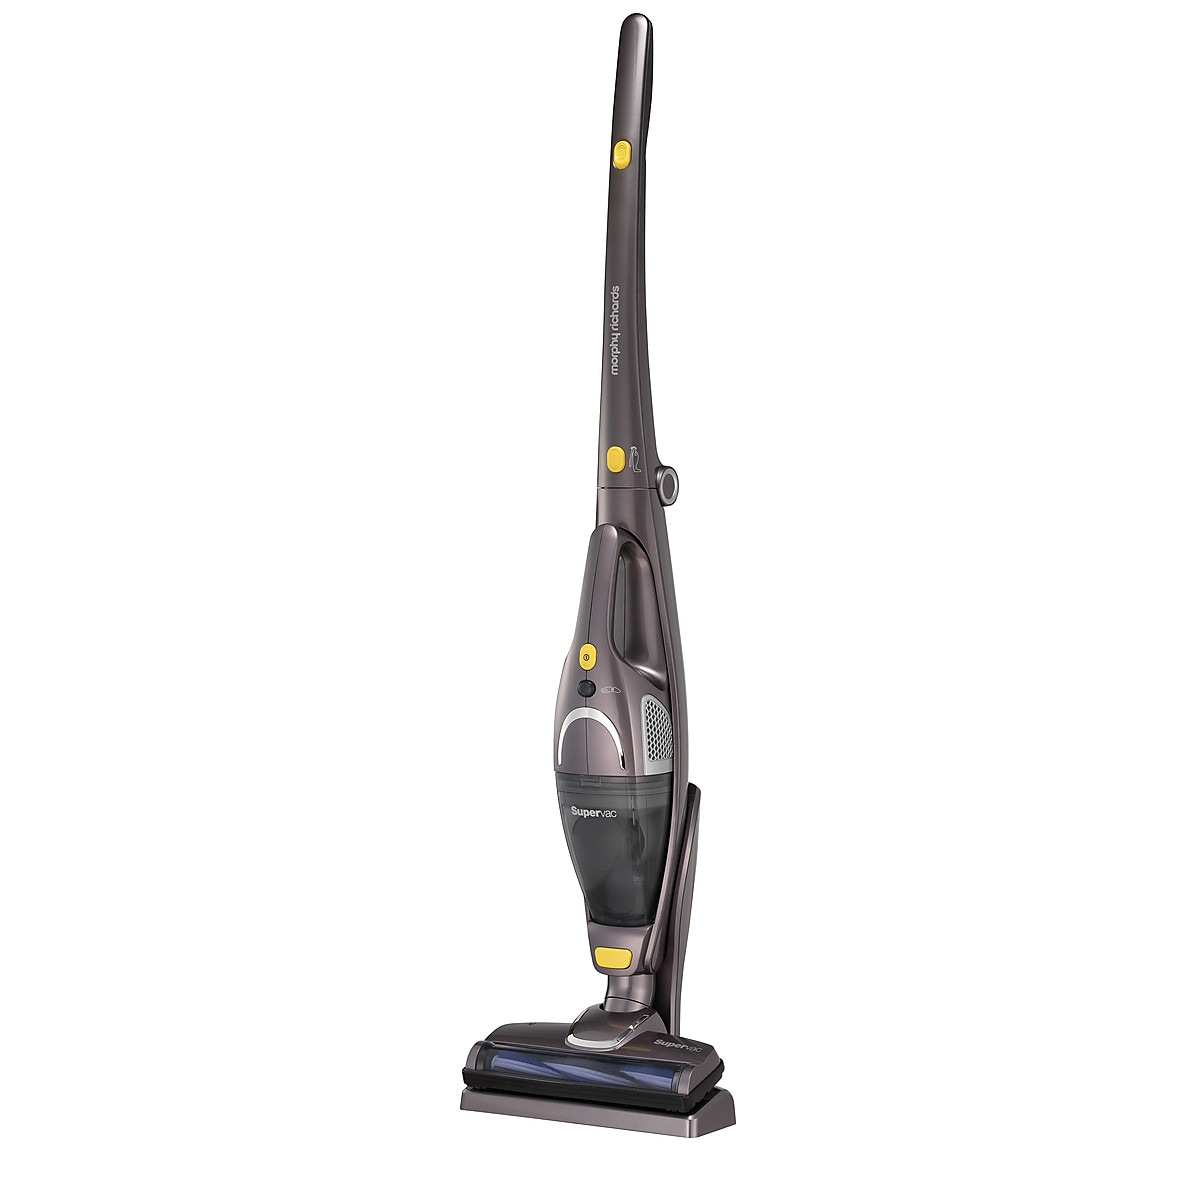 Morphy Richards 732000 2-in-1 Supervac Vacuum Cleaner